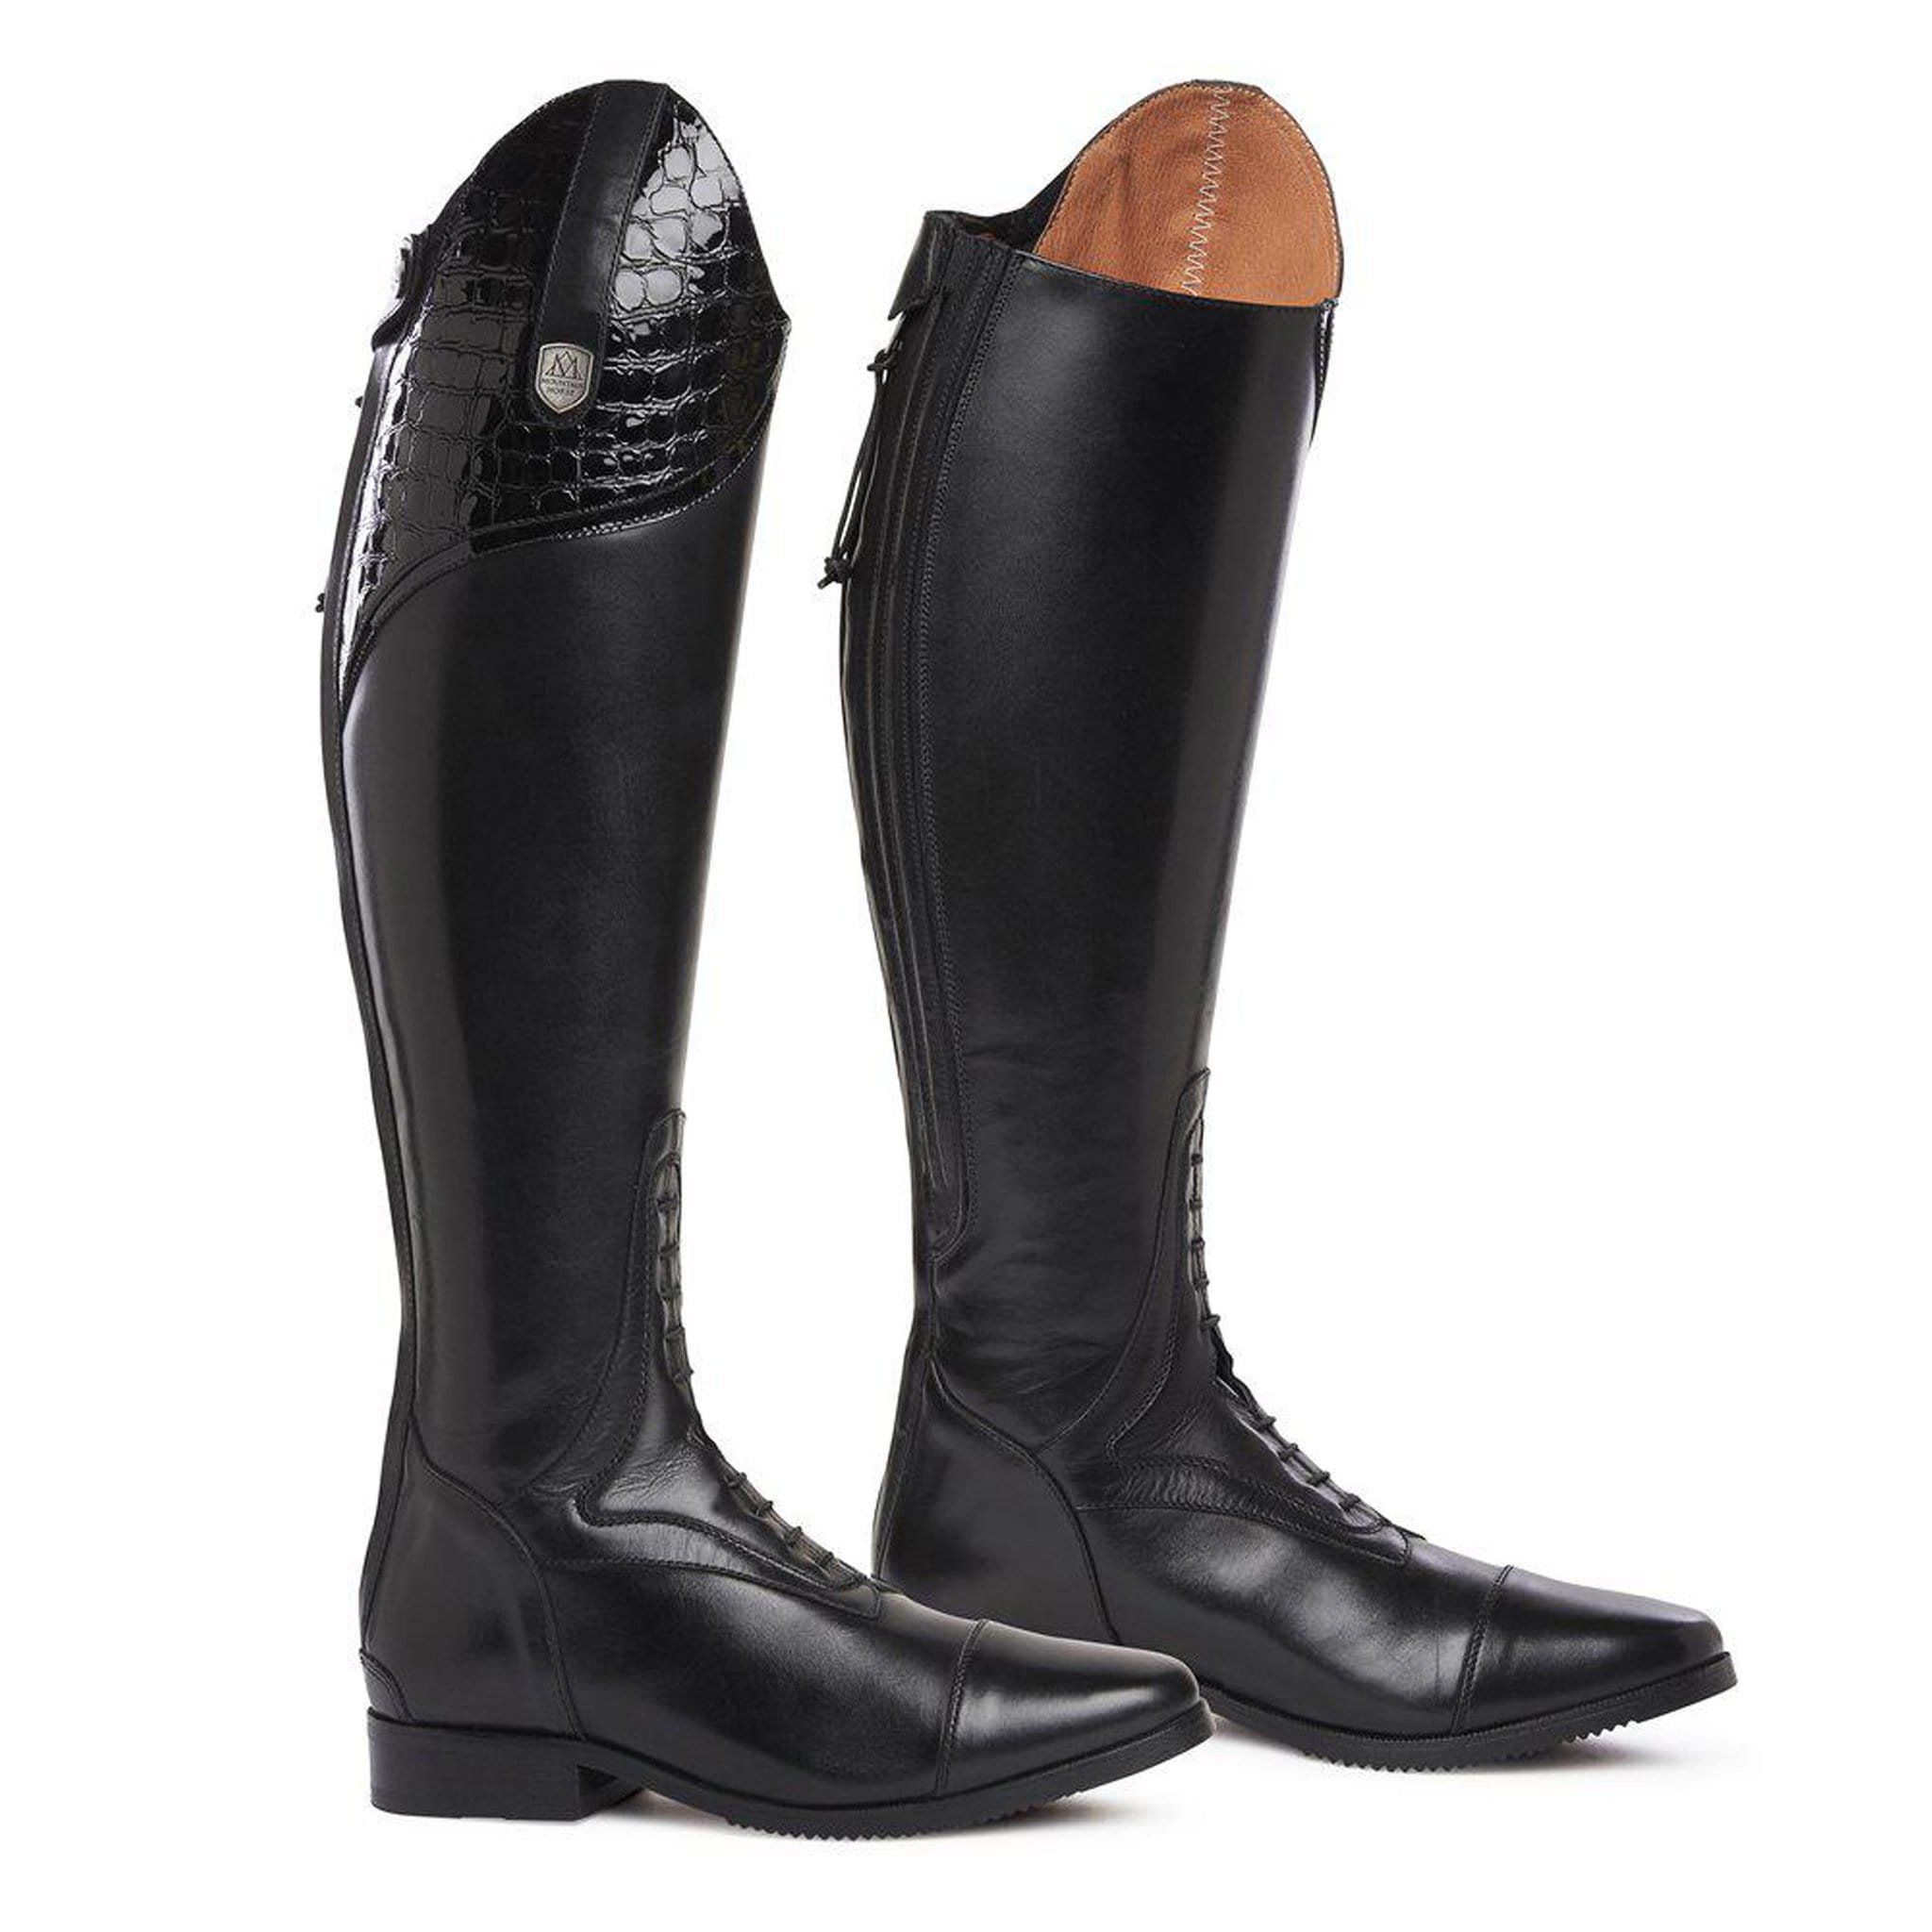 Mountain Horse Sovereign Lux Riding Boots - Black 0214 Studio Pair